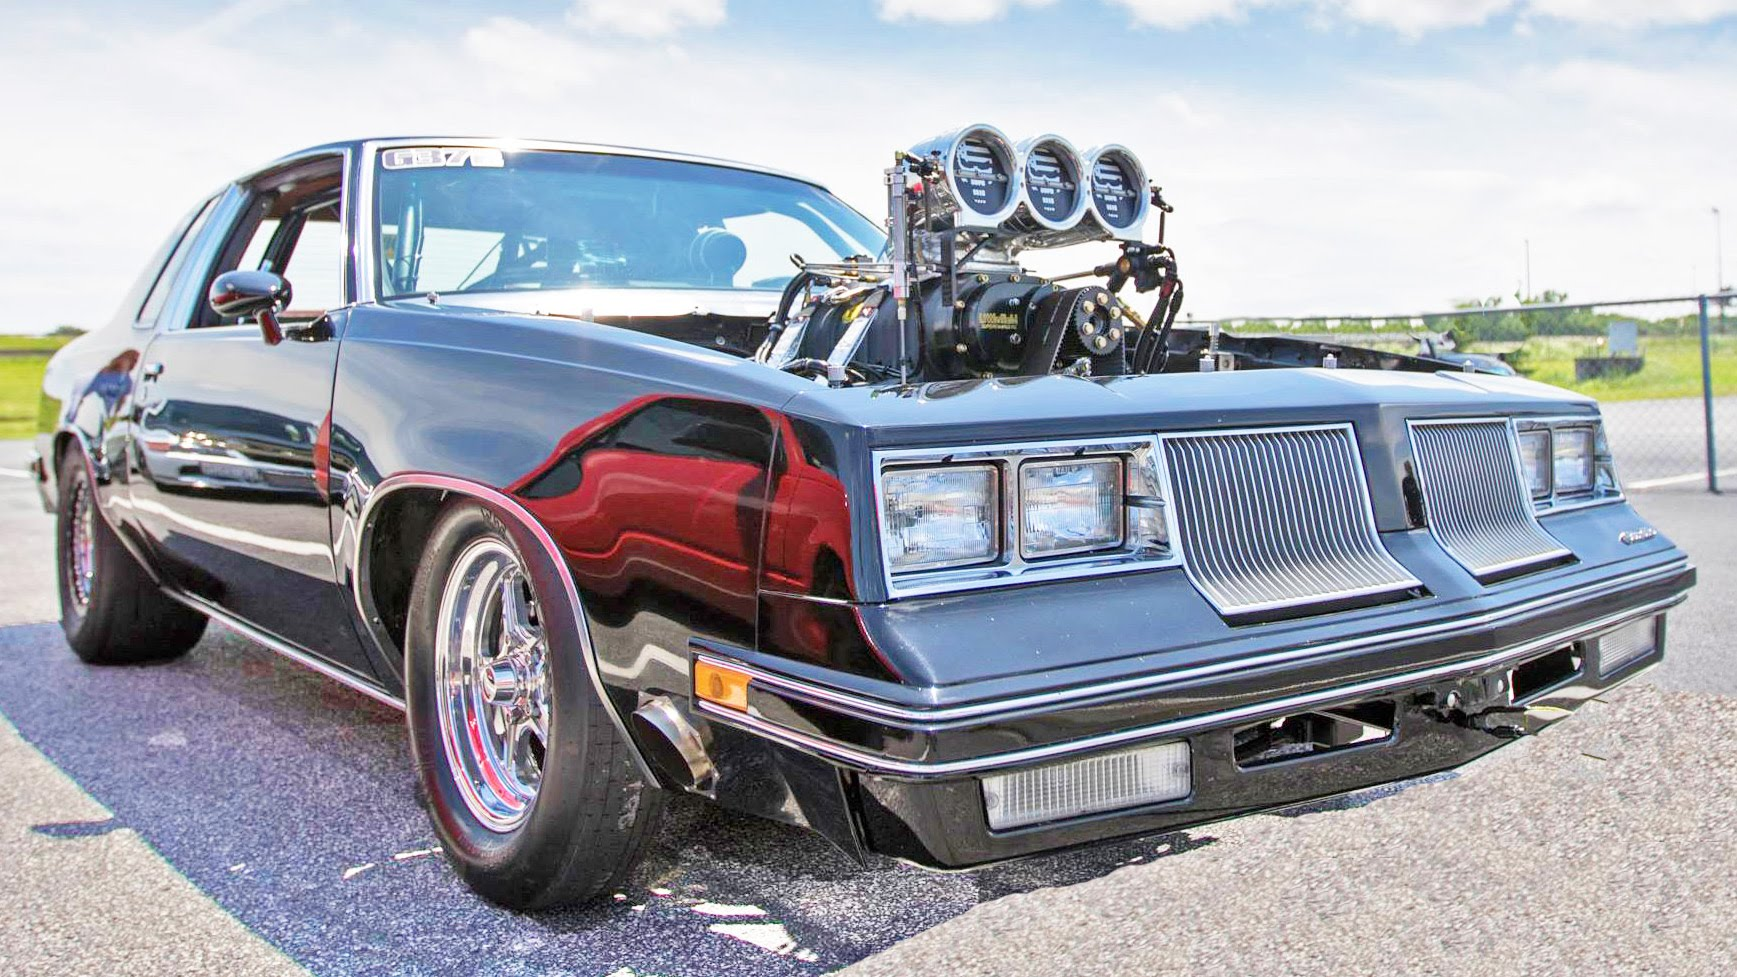 1650-hp-blown-cutlass-is-a-proper-drag-racing-monster